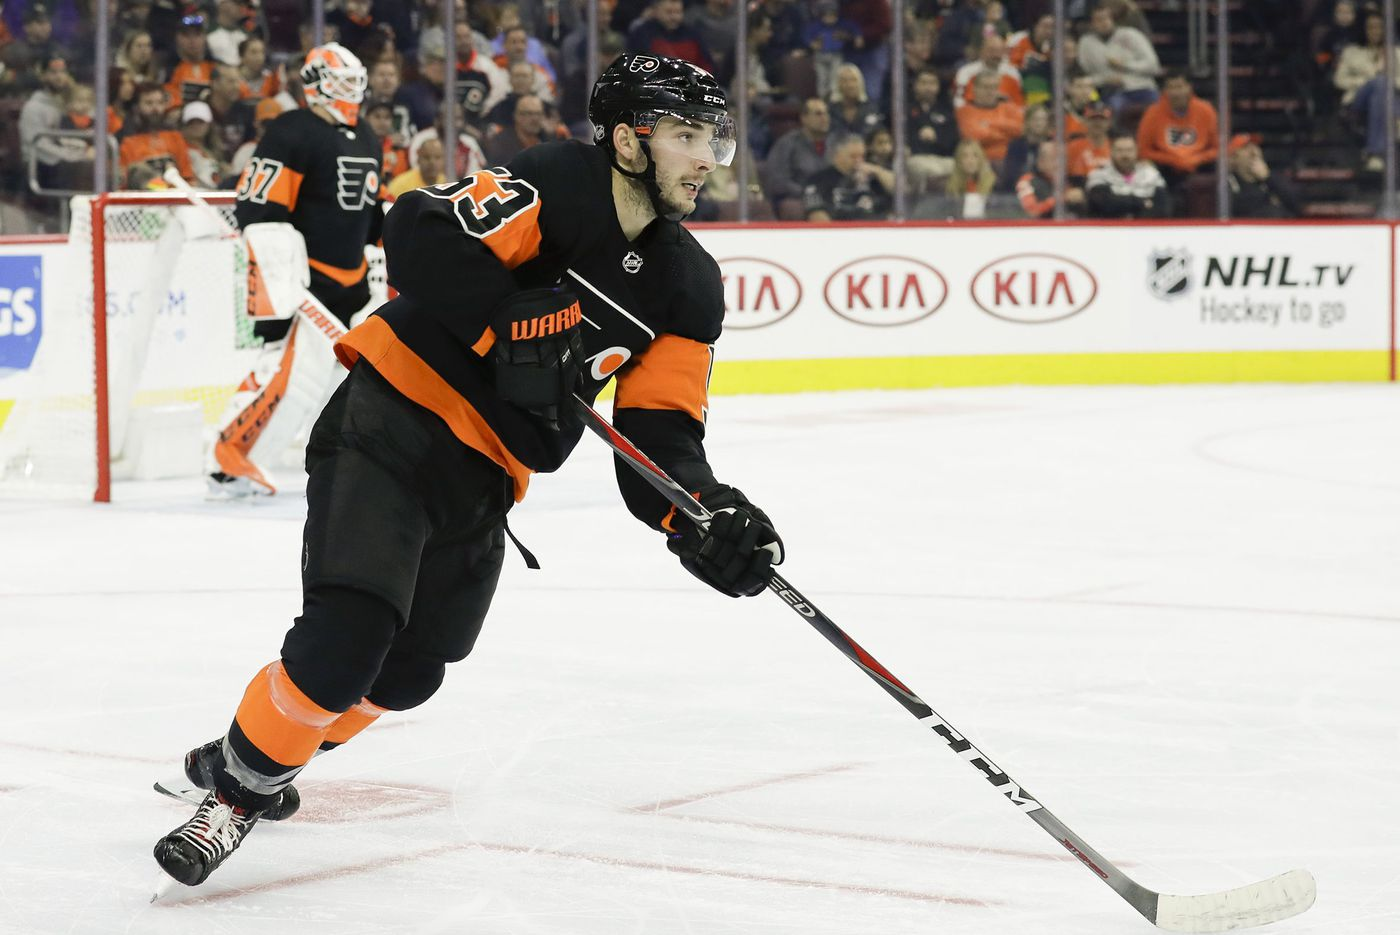 Flyers to face Panthers and look for better start